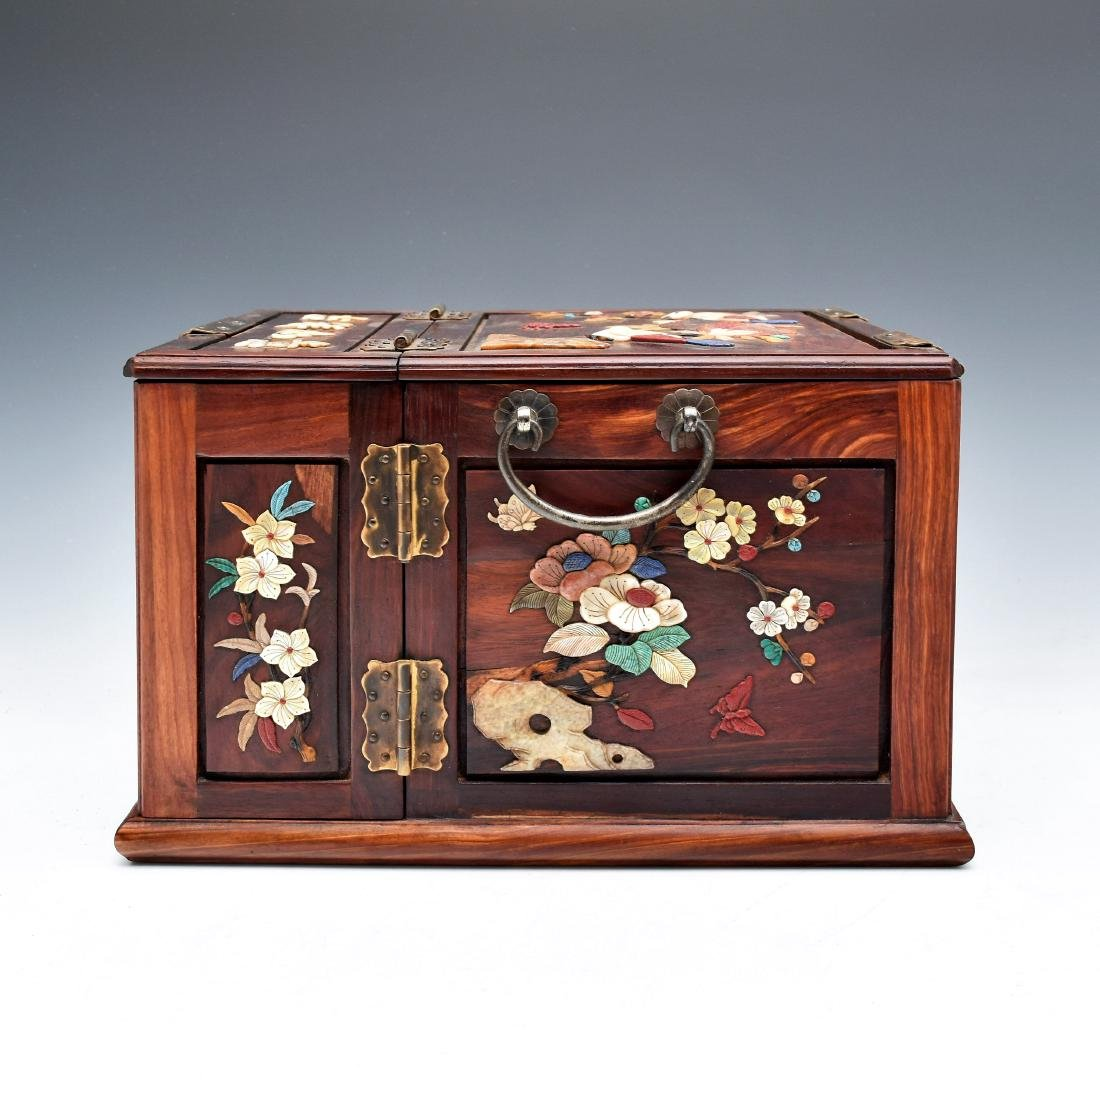 HUANGHUALI INLAID JEWELRY CHEST